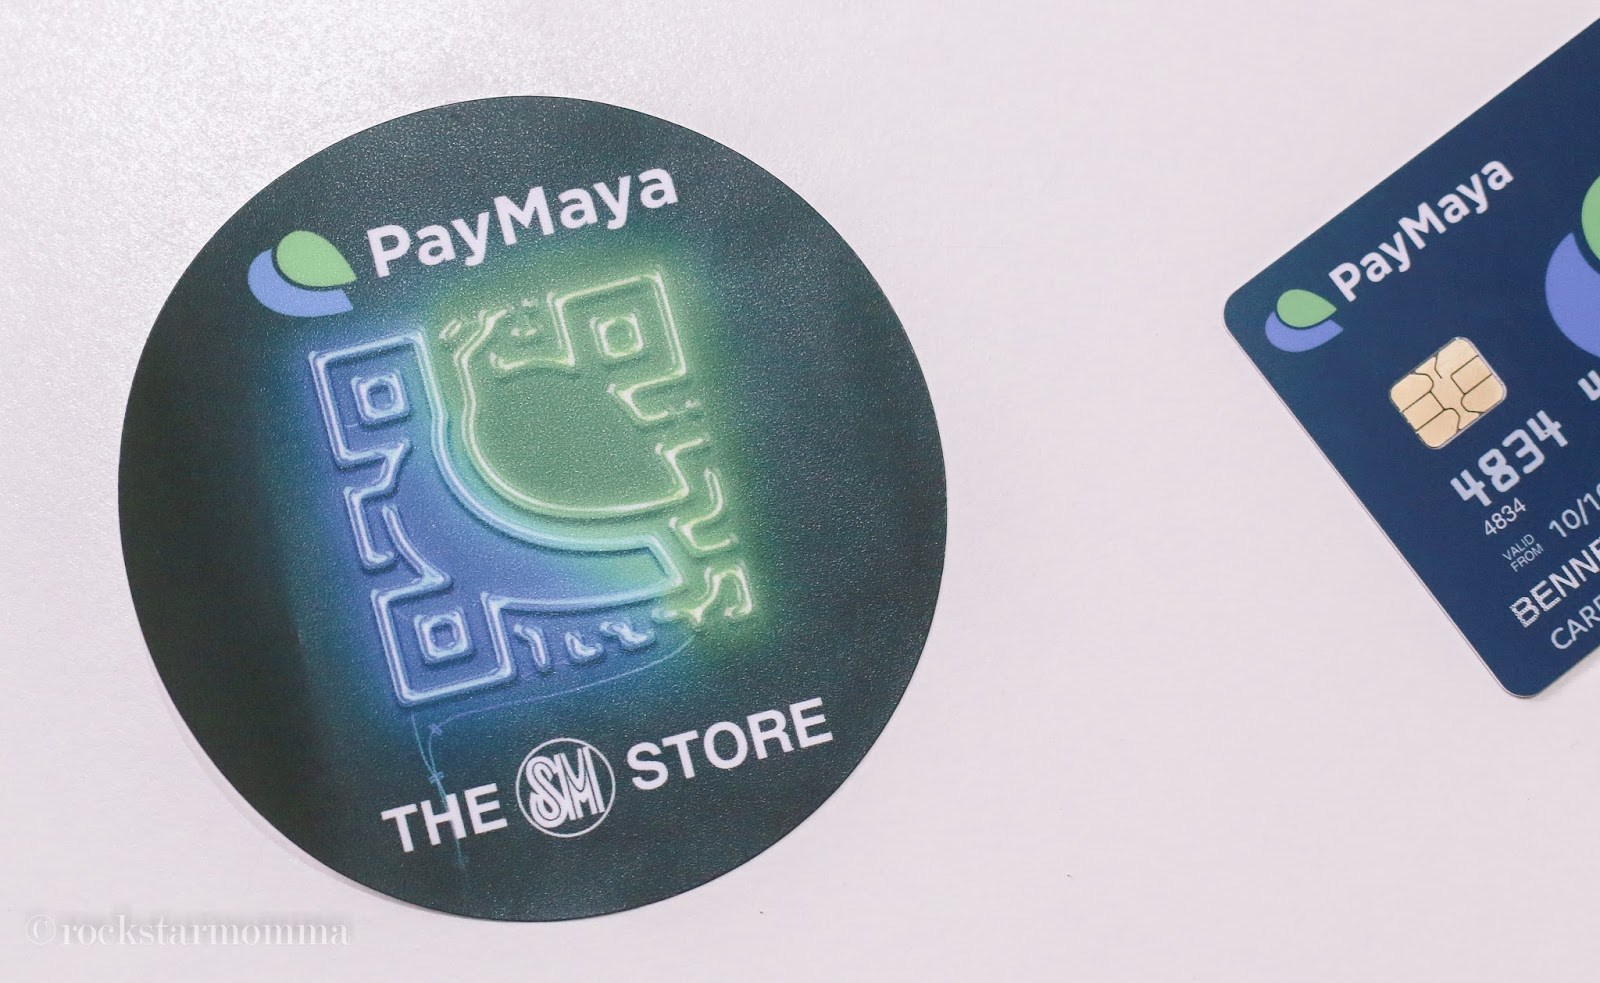 Four Reasons Why You Should Shop with PayMaya at The SM Store